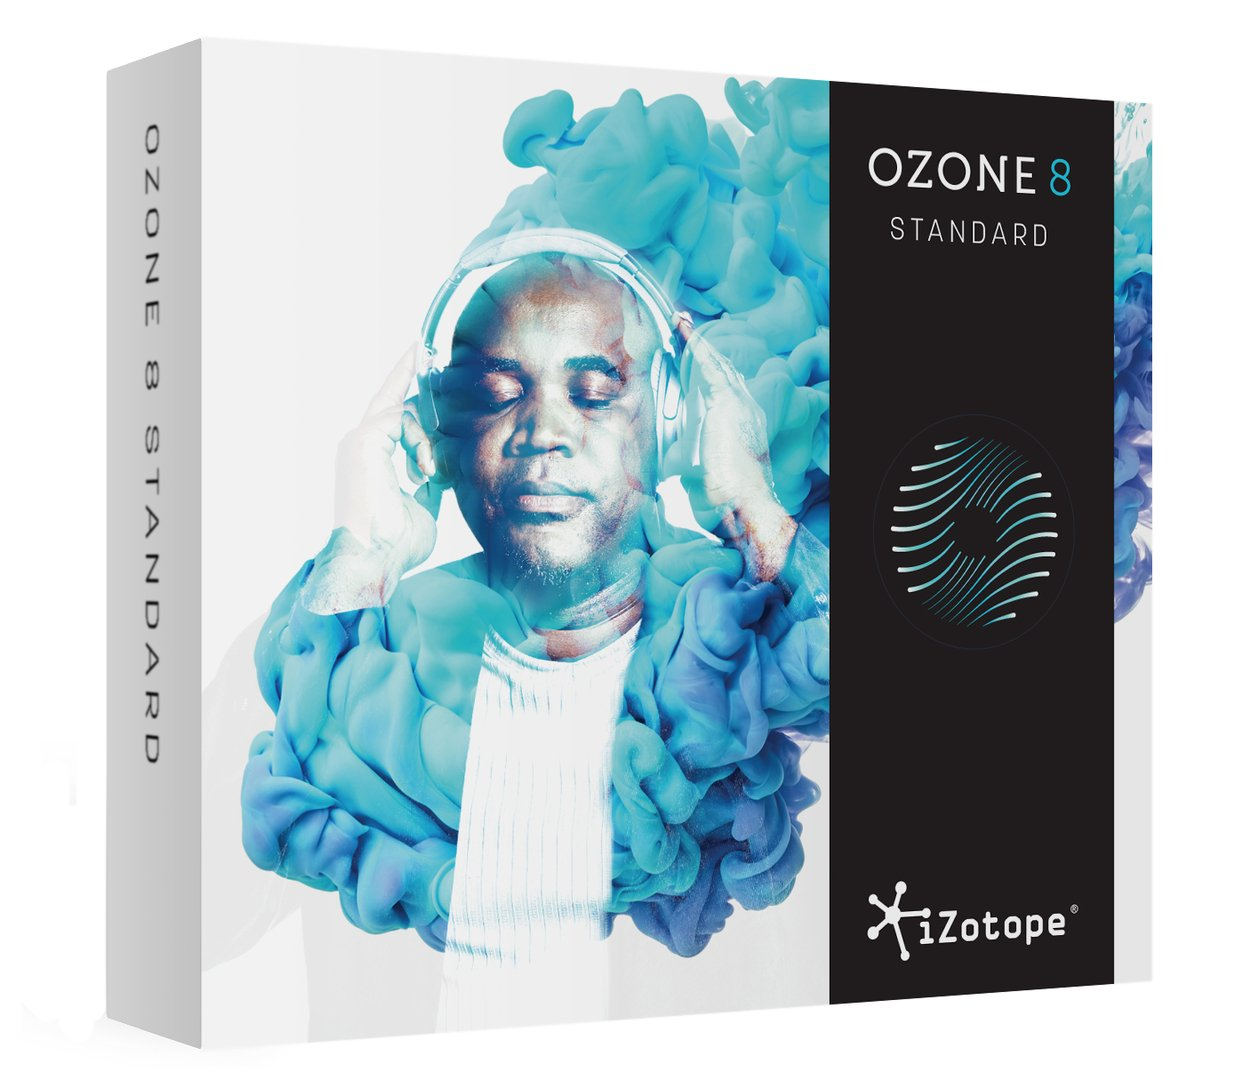 Upgrade from Ozone 1-7 (Standard or Advanced)